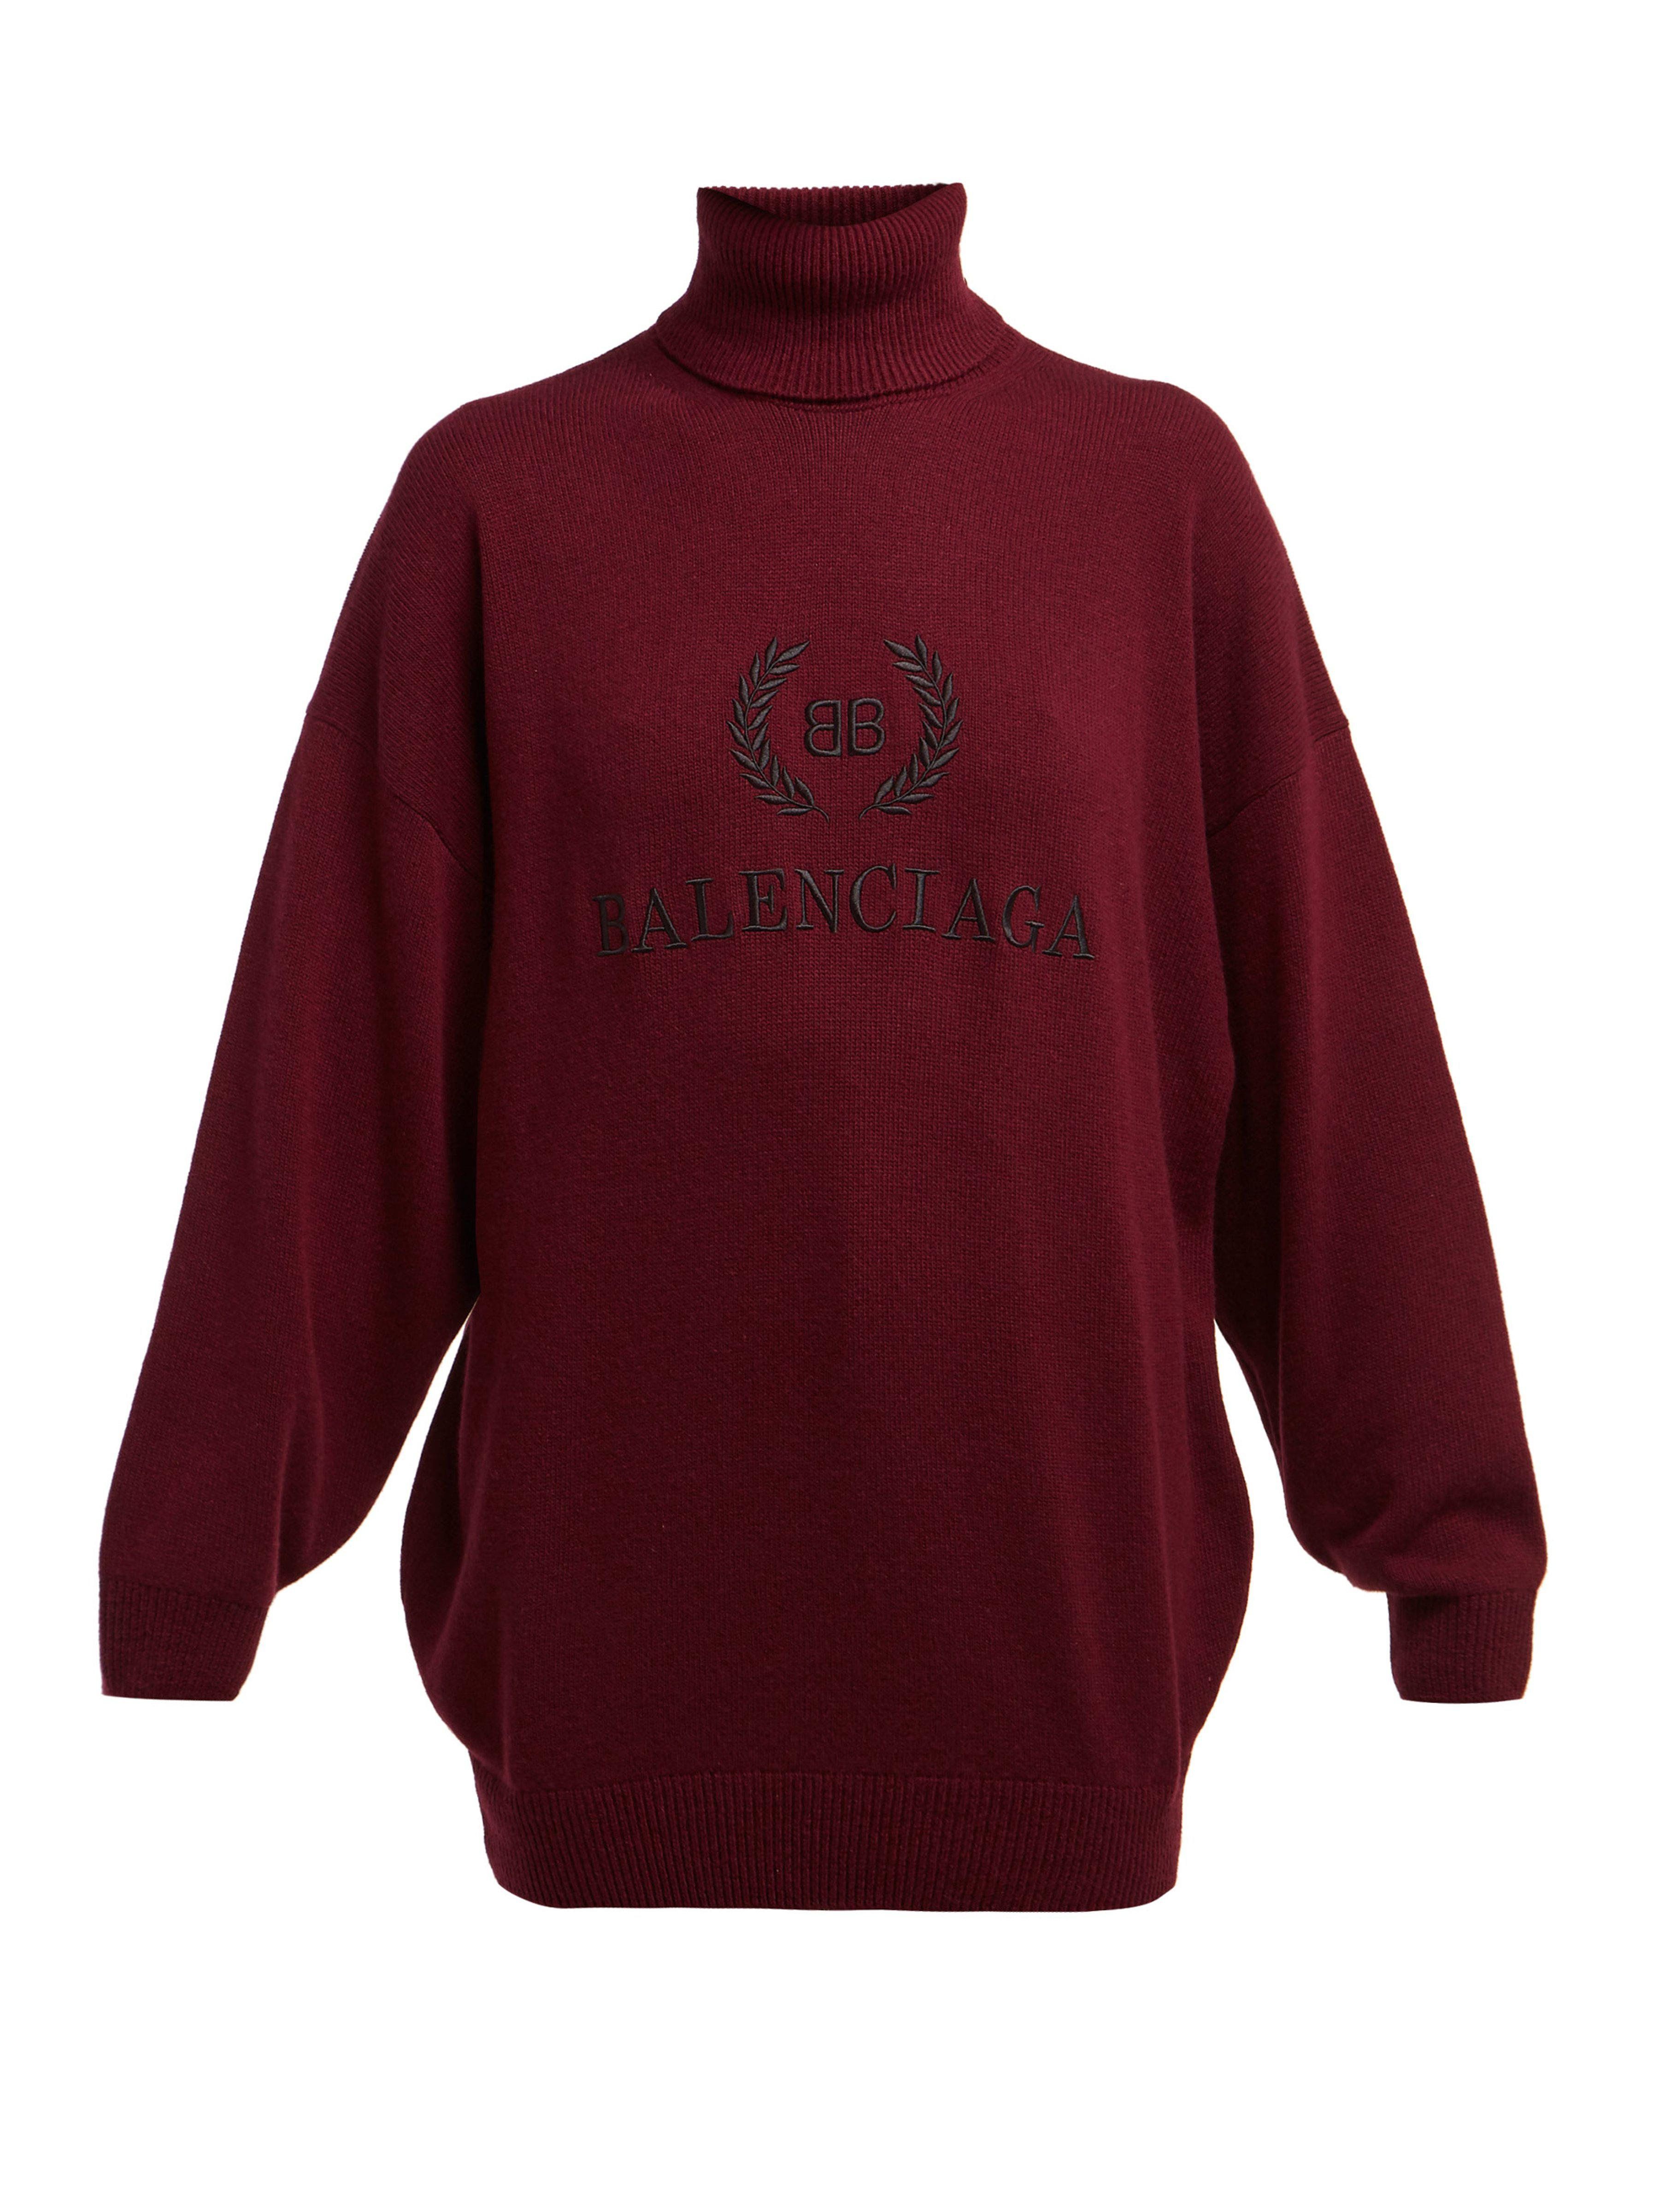 Balenciaga - Multicolor Logo Embroidered Roll Neck Wool Blend Sweater - Lyst.  View fullscreen 7534aeb07